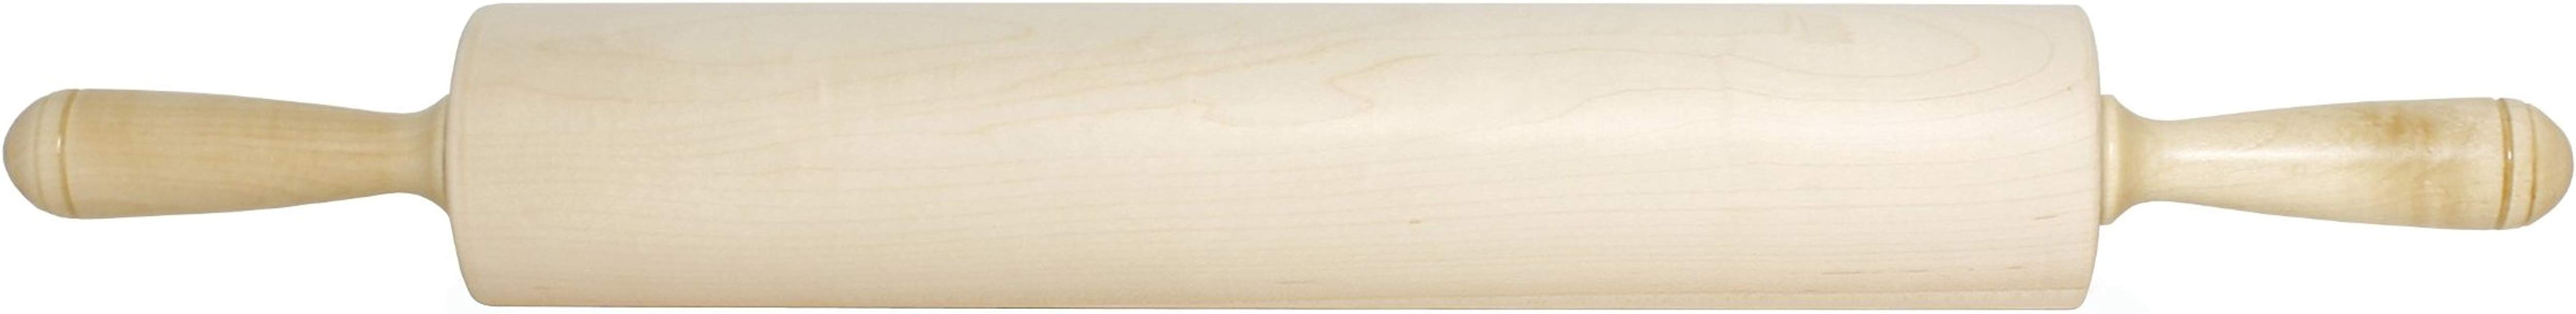 J K Adams Patisserie Maple Wood Rolling Pin 15 Inches By 2 3 4 Inches